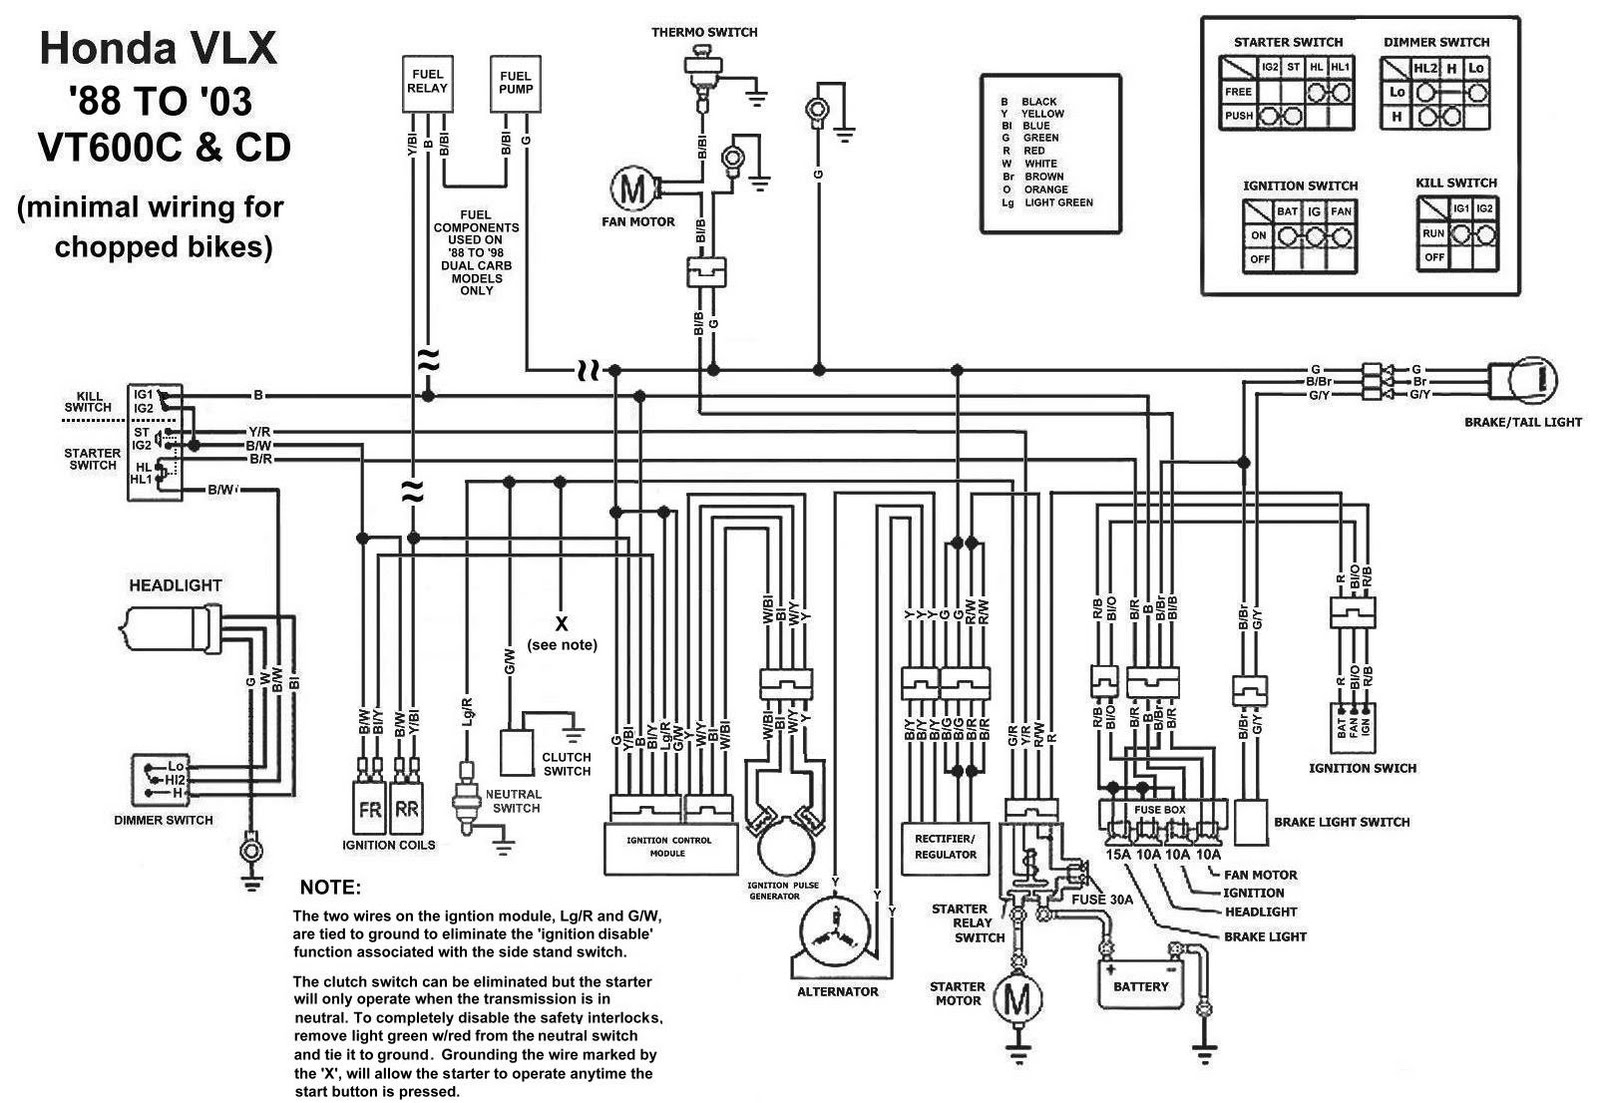 Wiring Diagram For 1985 Honda Vt500 Shadow, Wiring, Get